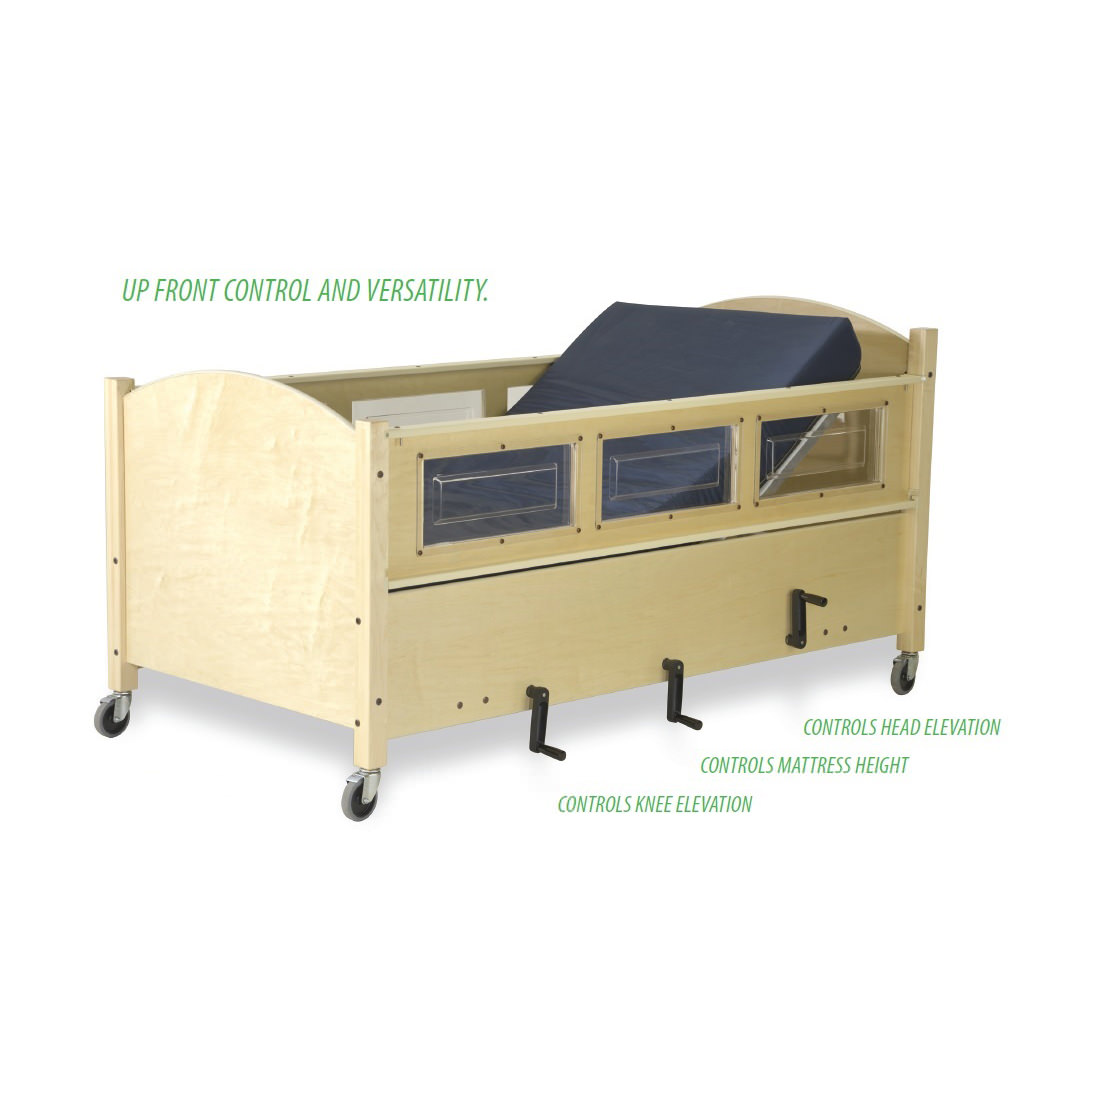 SleepSafer manual height adjustable bed